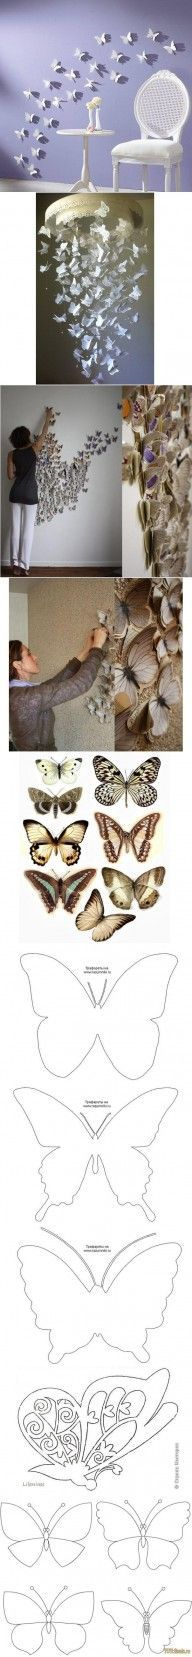 DIY Butterfly Pattern Wall Decor DIY Projects